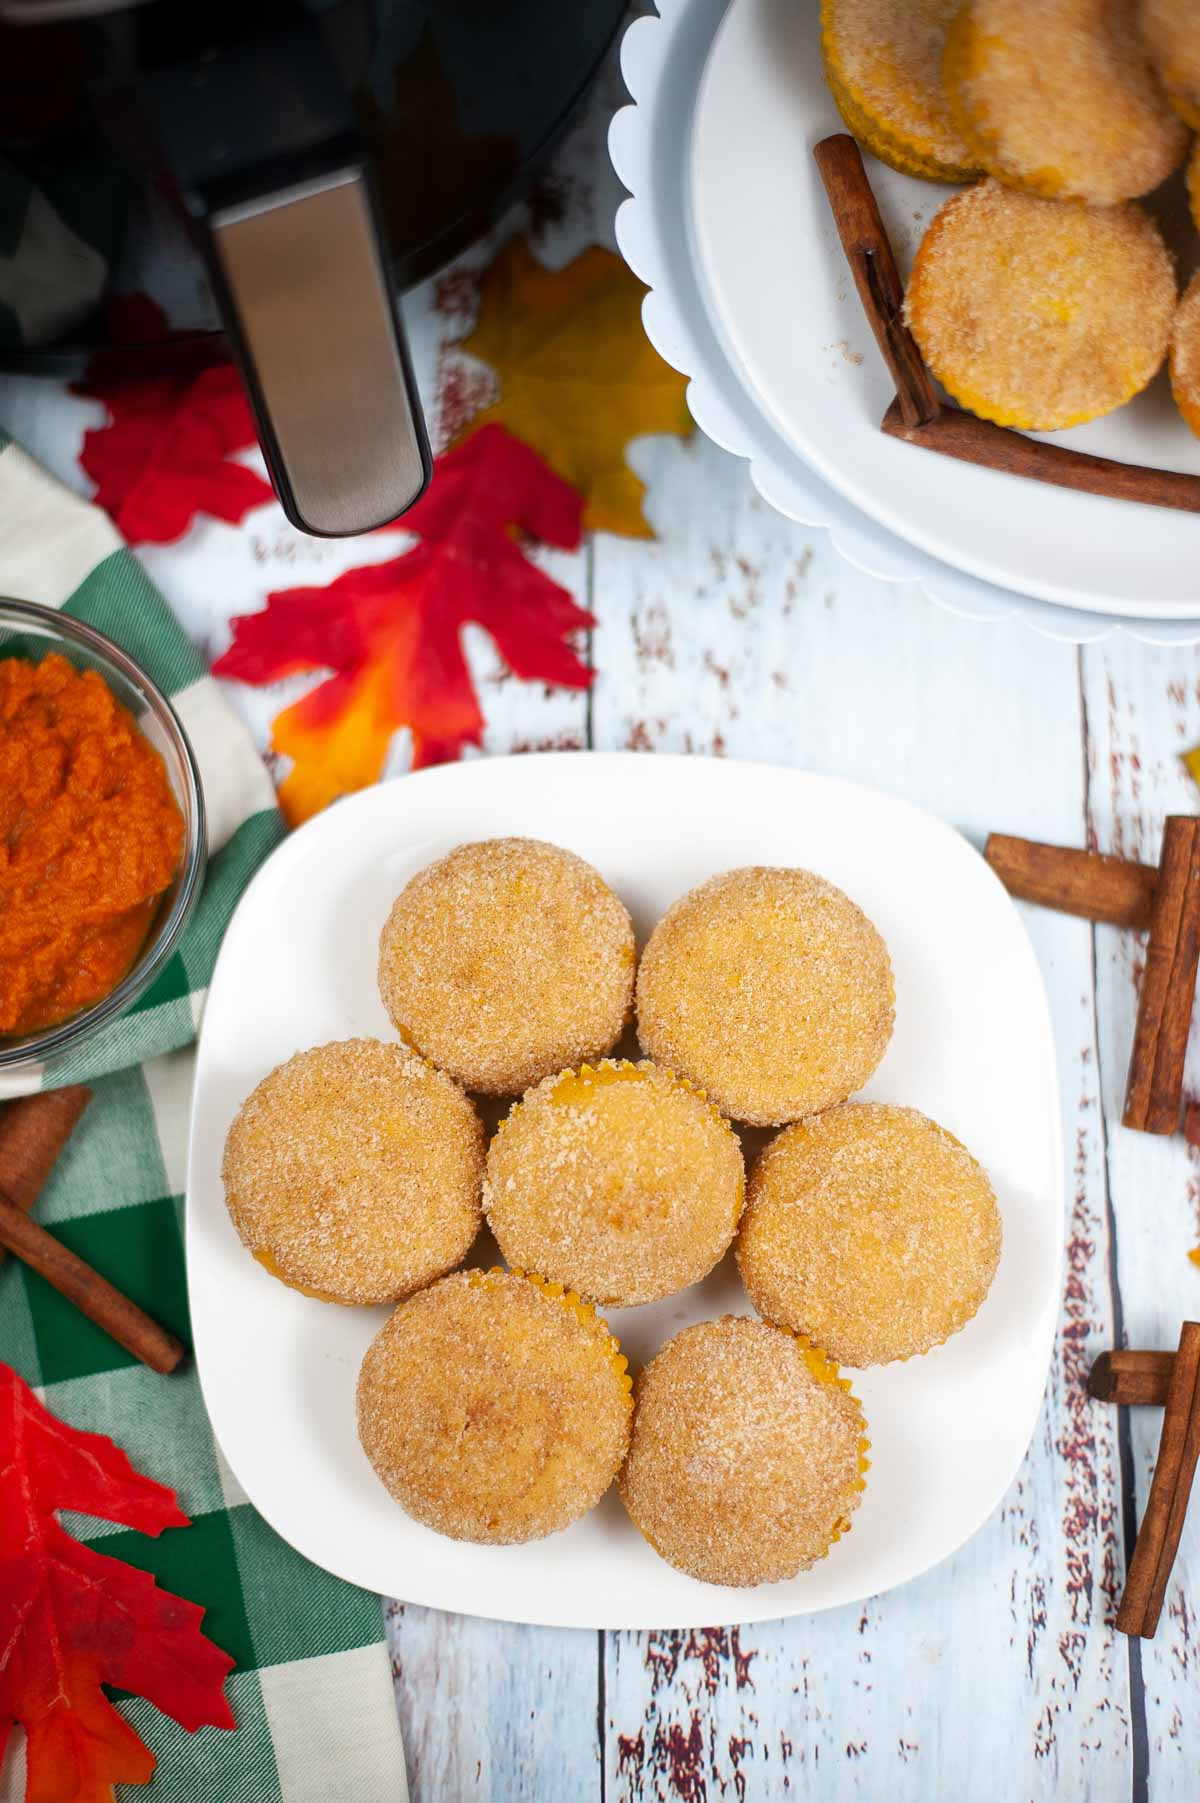 white plate with pumpkin muffins on it and fall decor on the table.